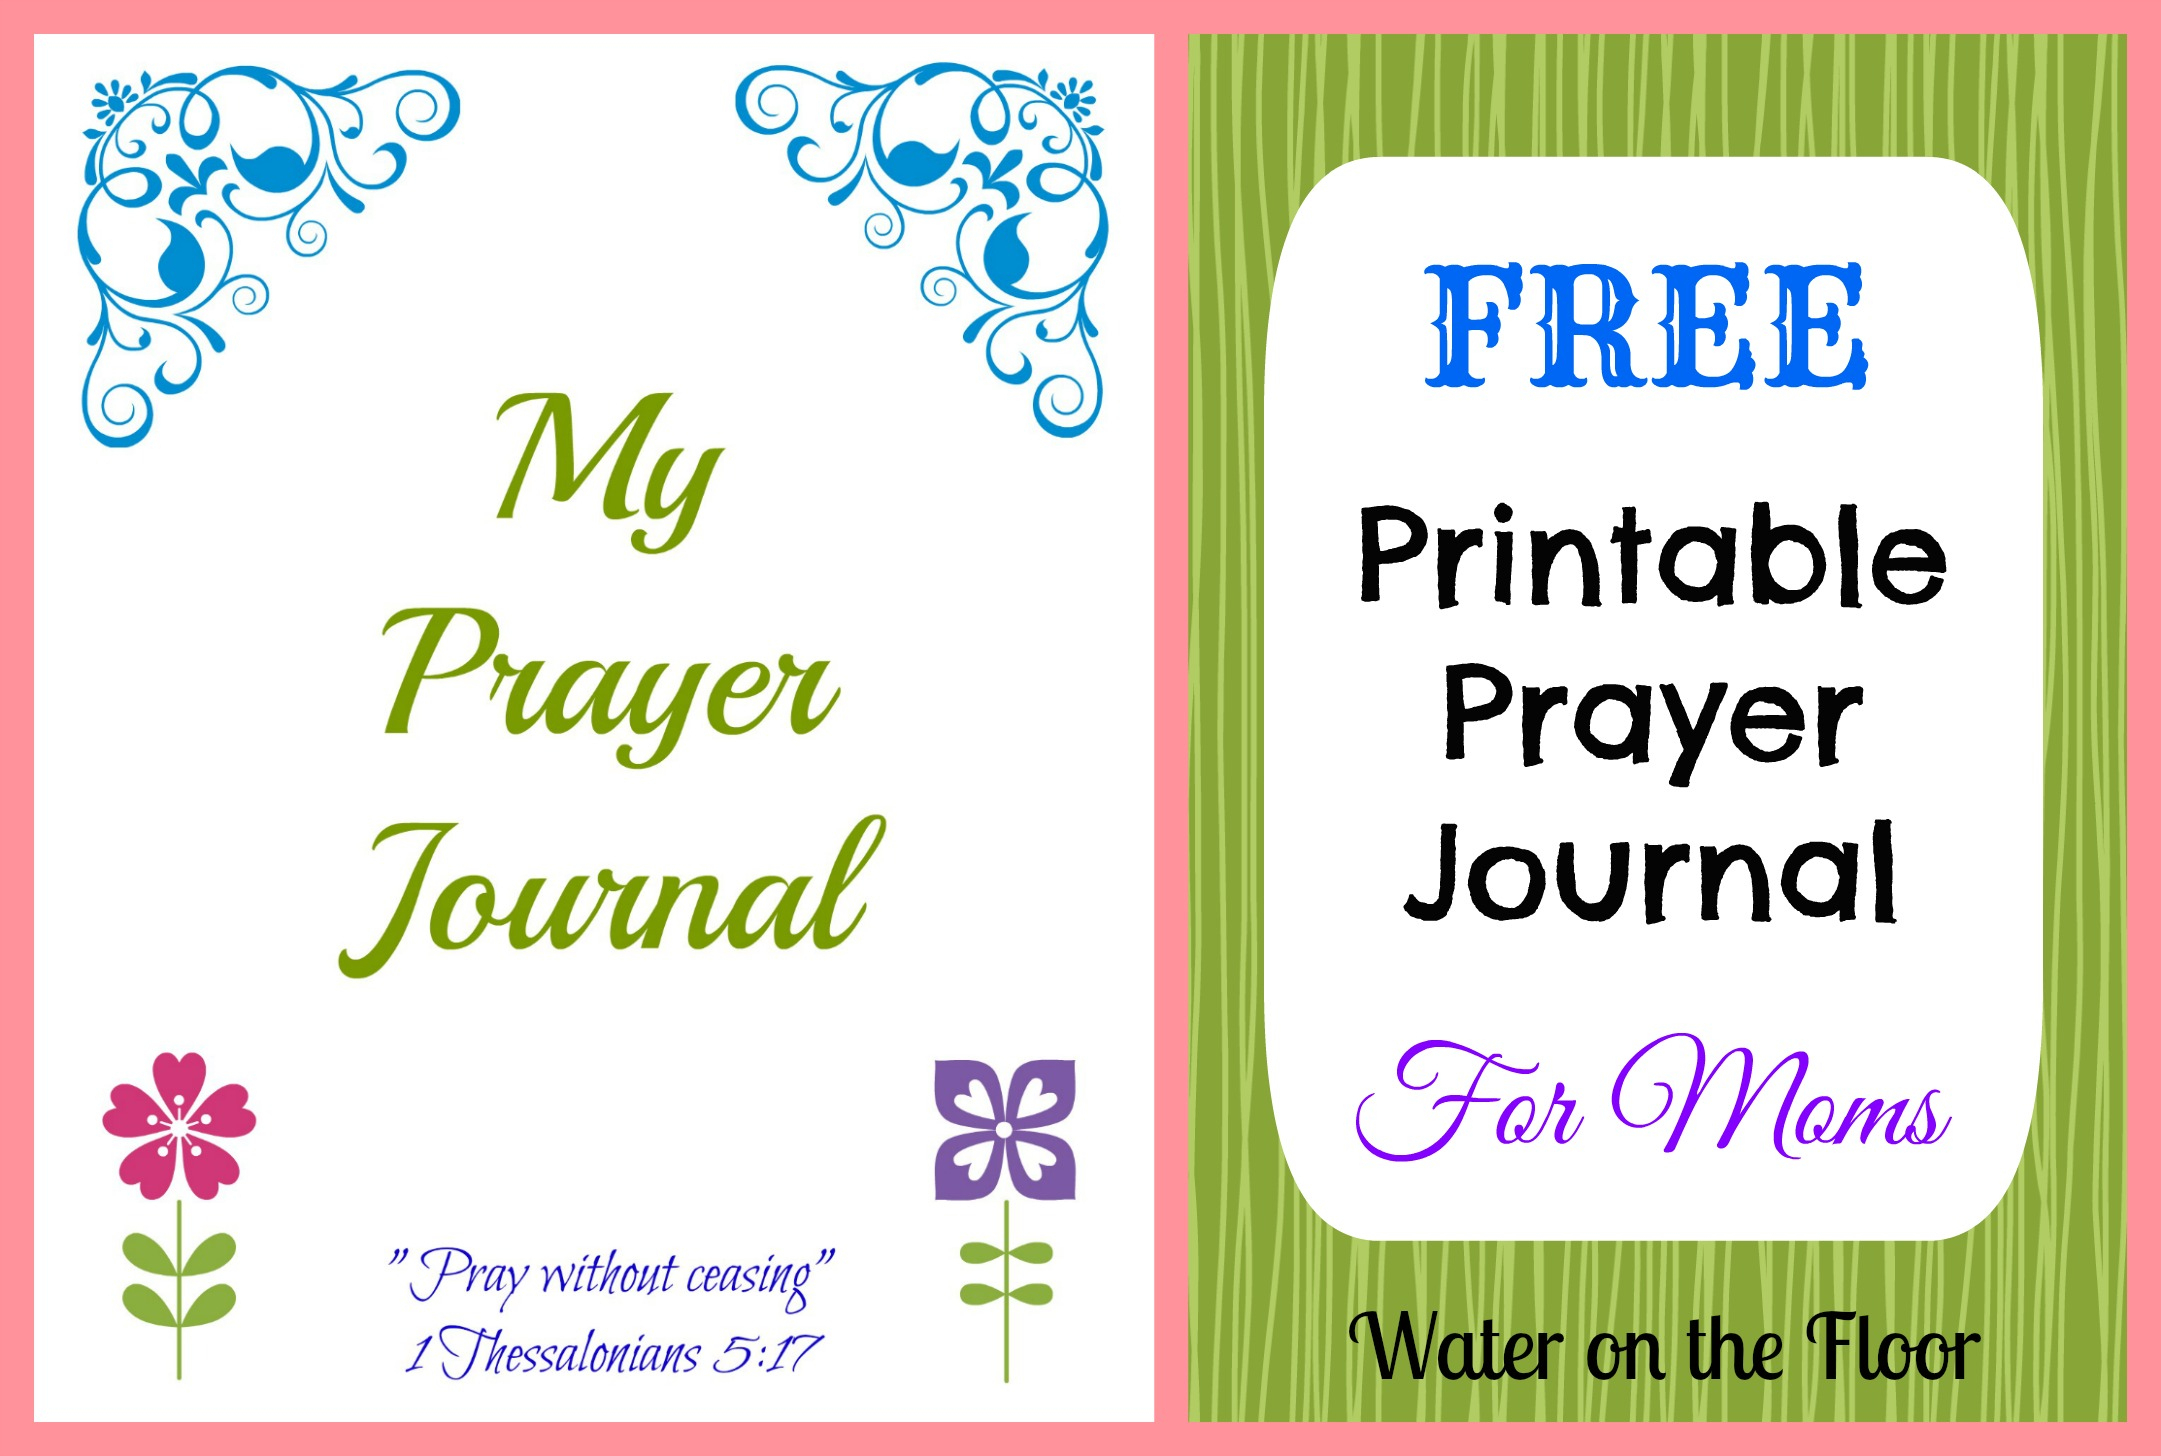 Free Printable Prayer Journal For Moms | Water On The Floor - Free Printable Prayer Journal